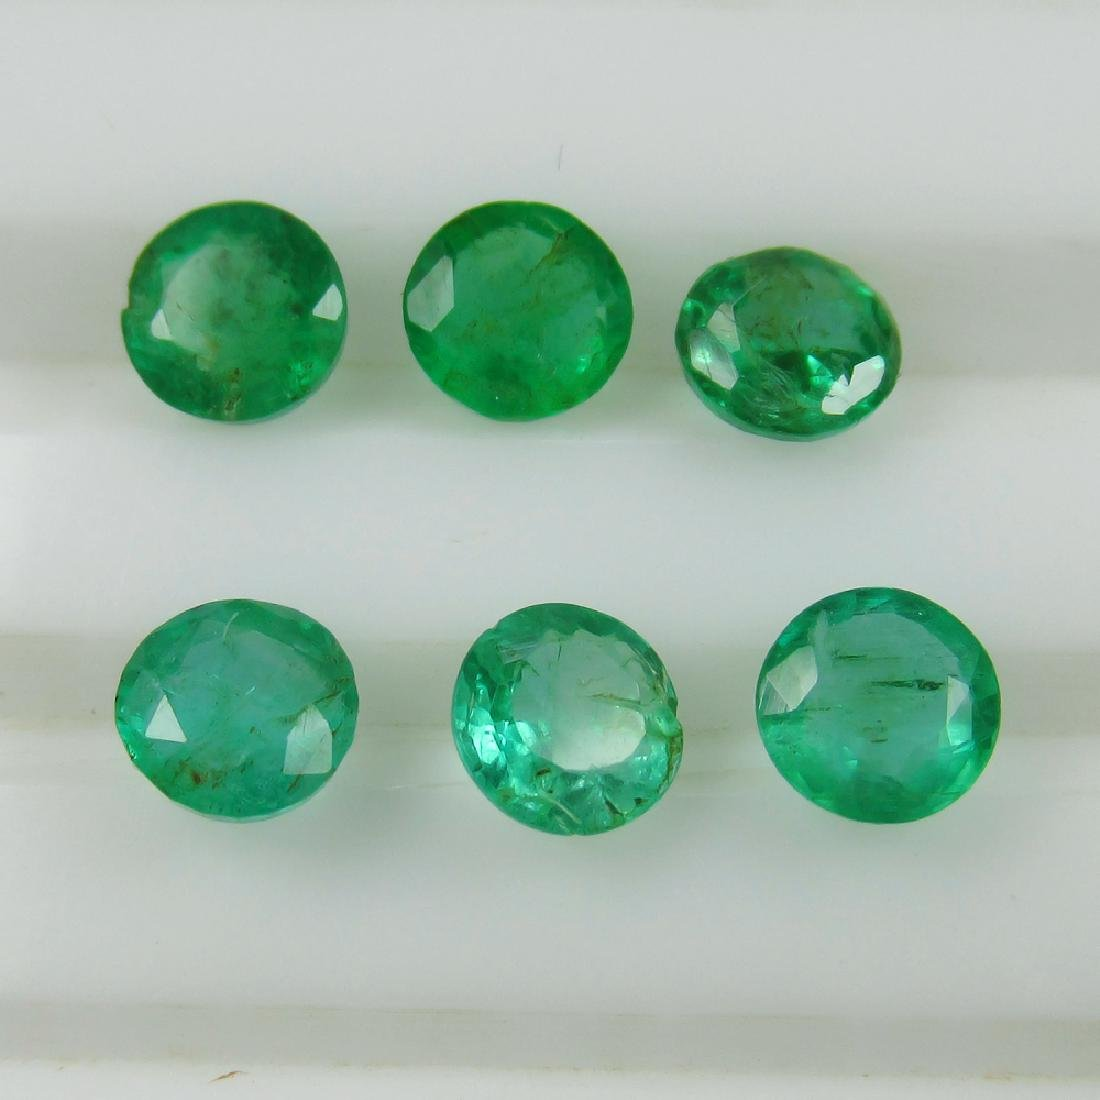 2.35 Ct Genuine Zambian Emerald Calibrate 4.7 mm